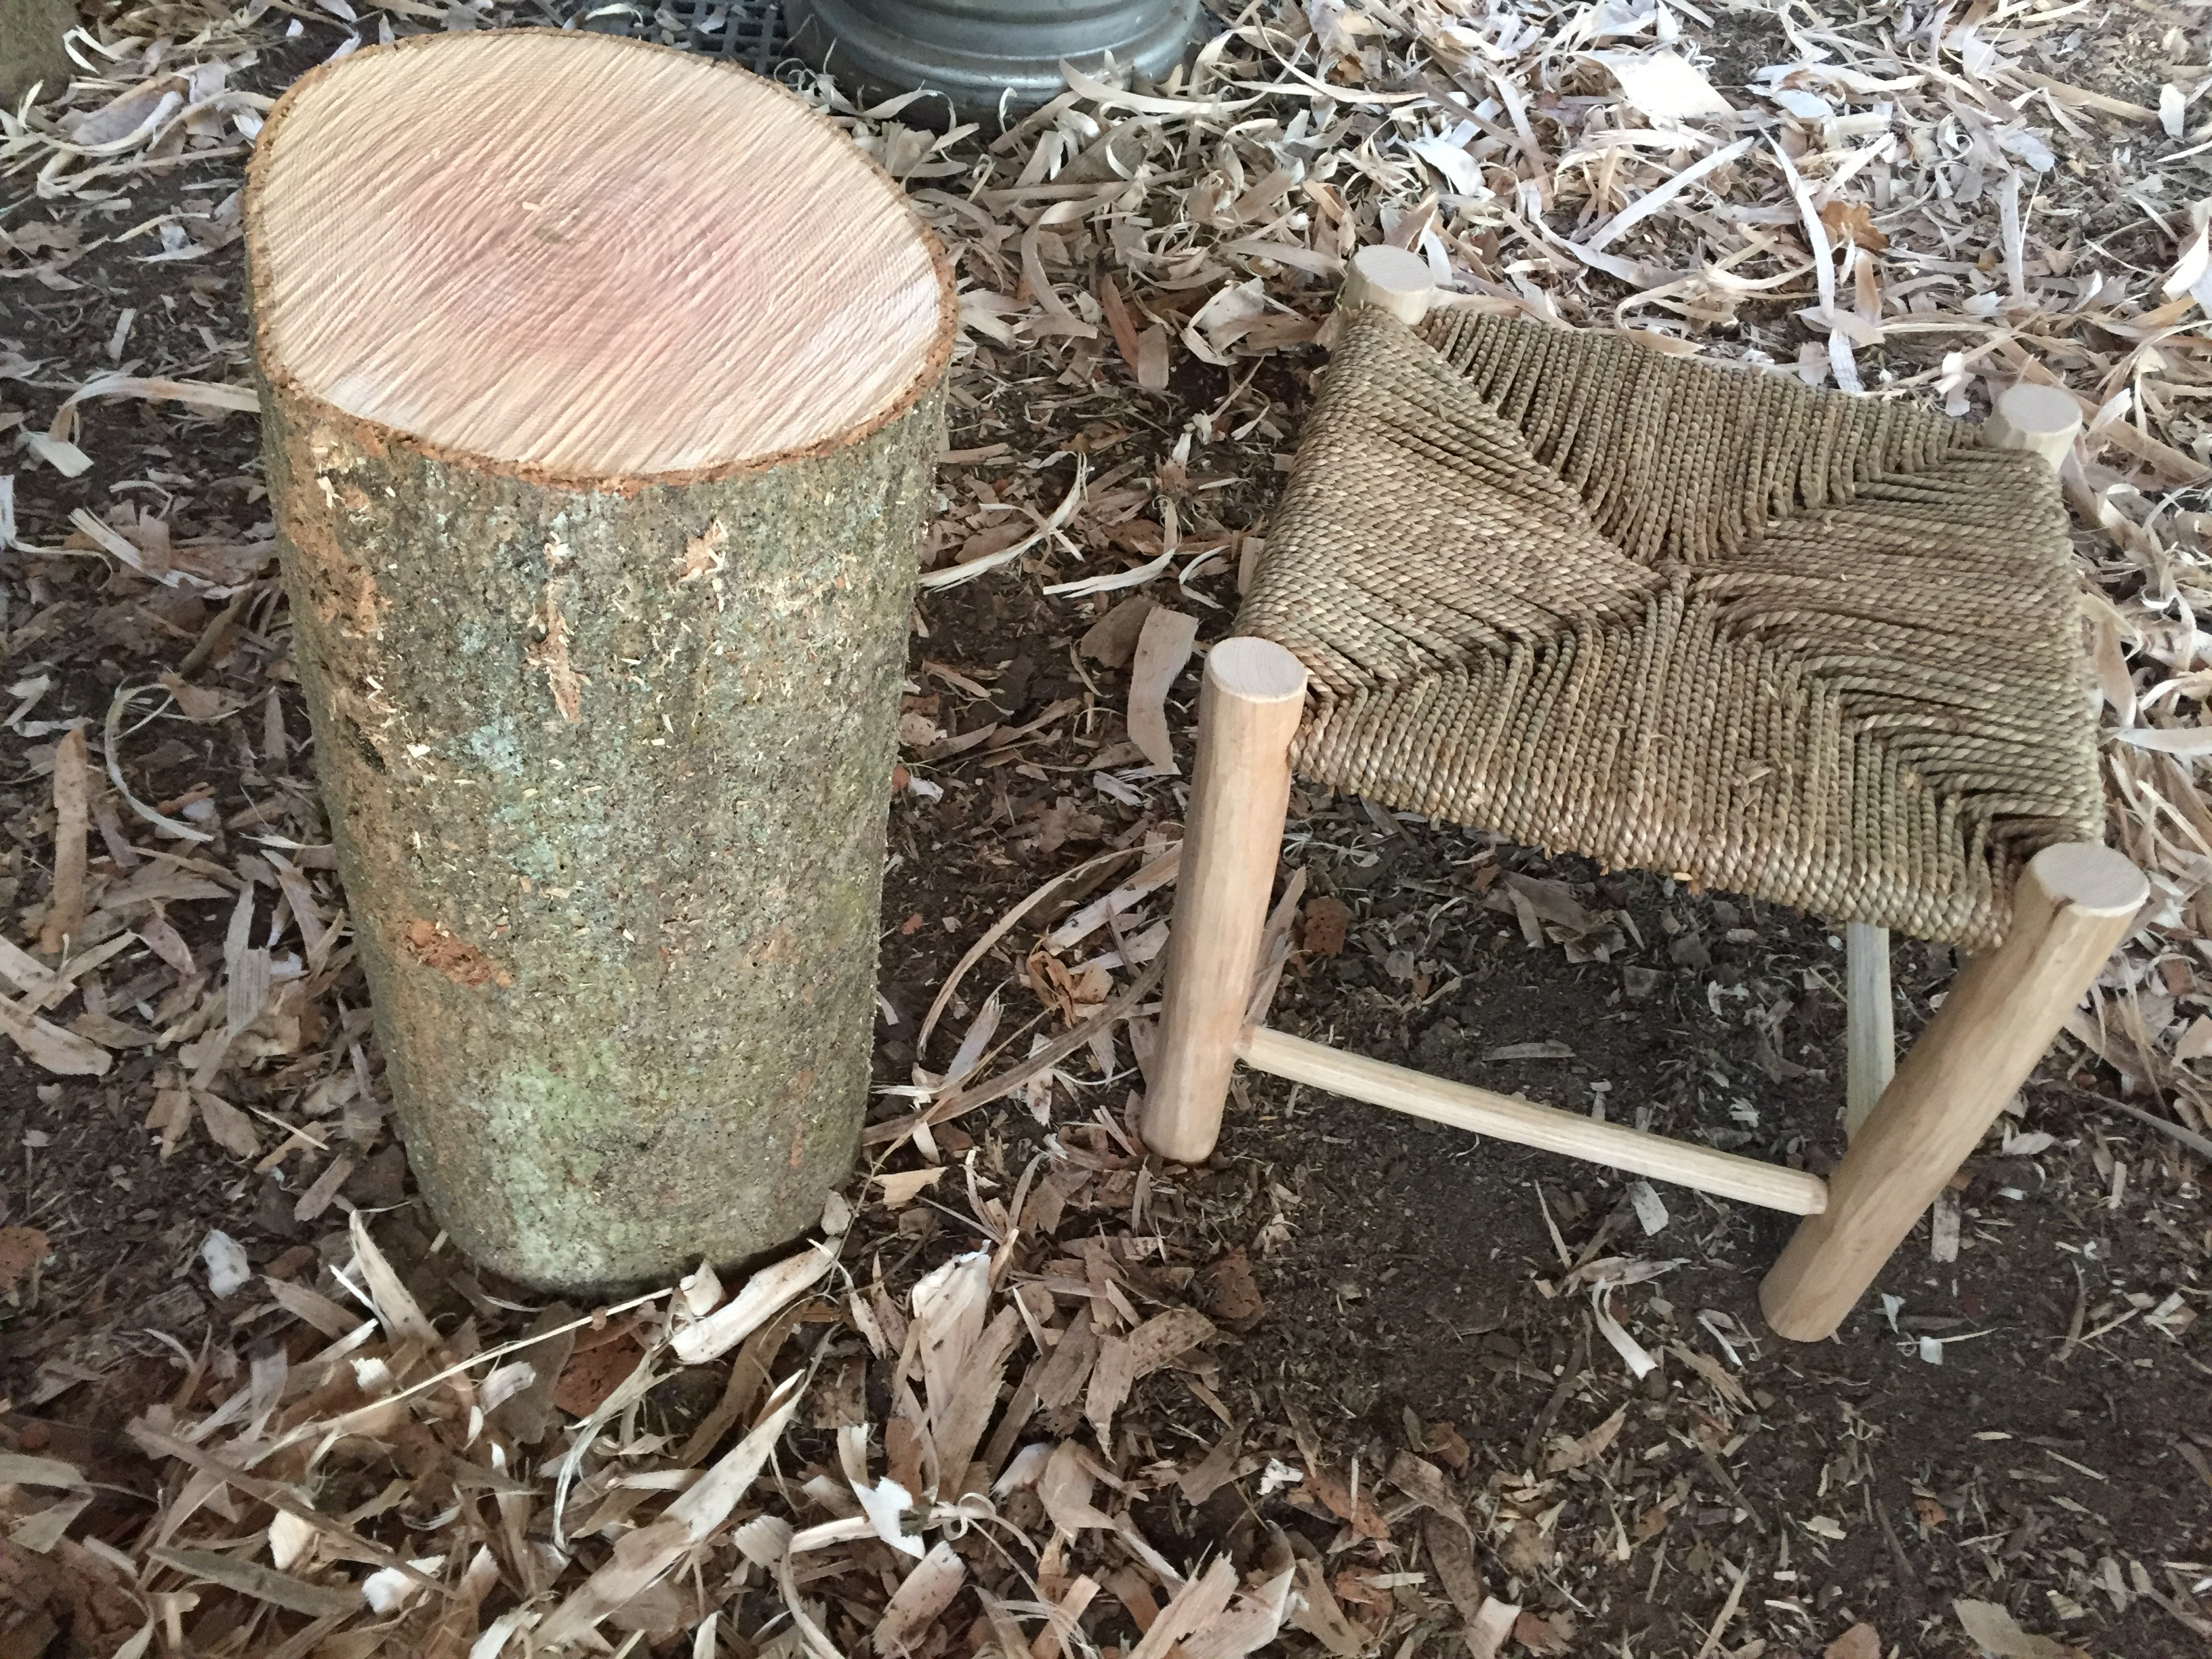 Green Woodworking : 3 day Make a stool